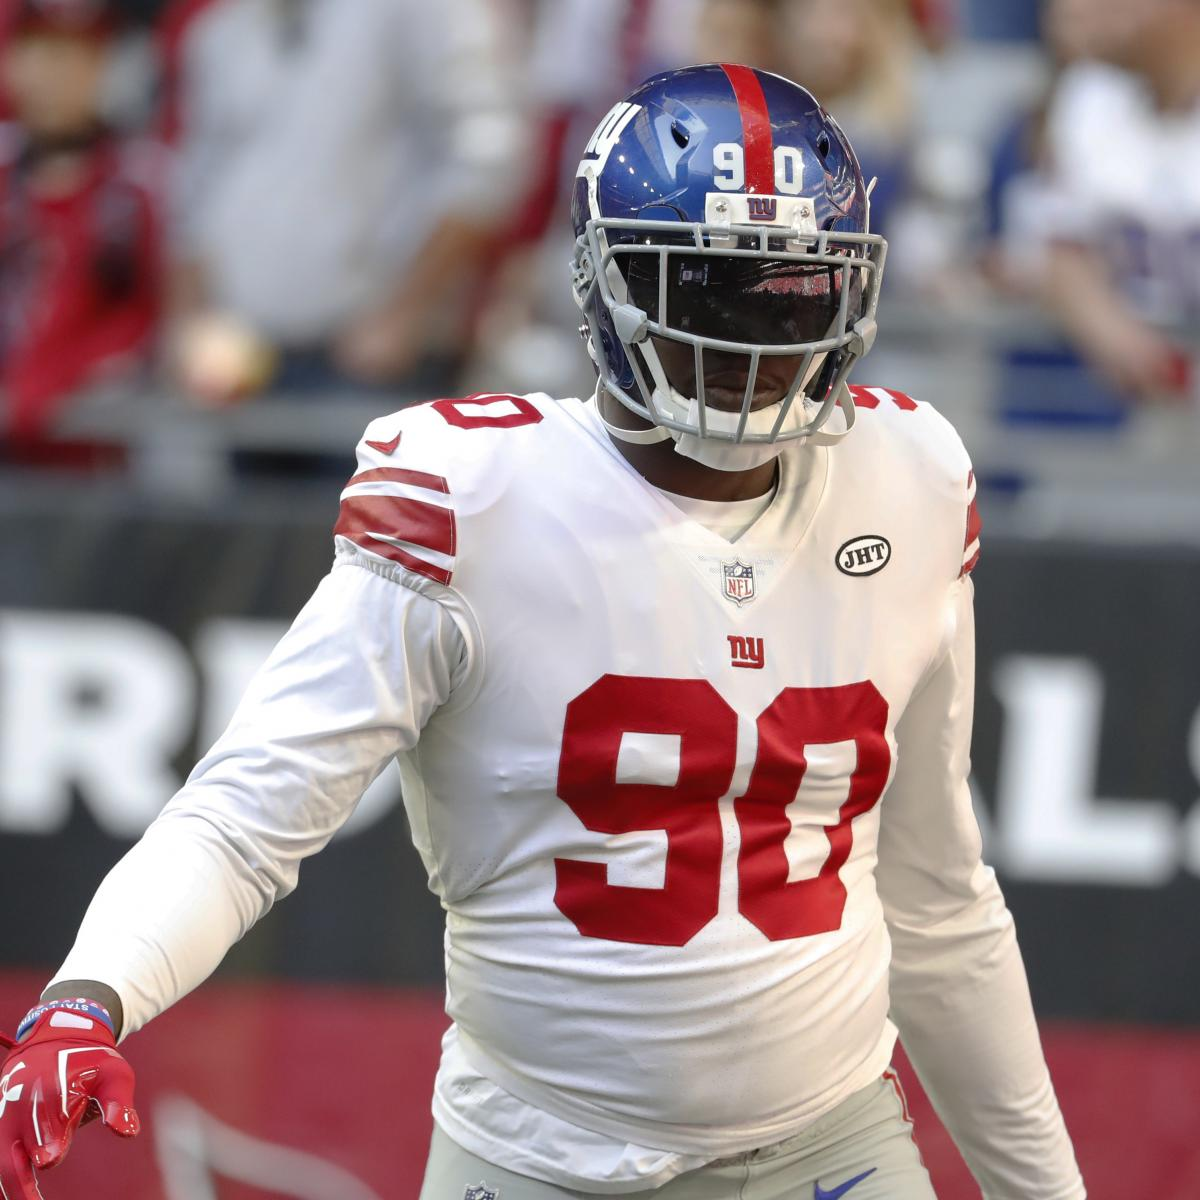 Giants' Blockbuster Trade Has Big NFL Draft Implications